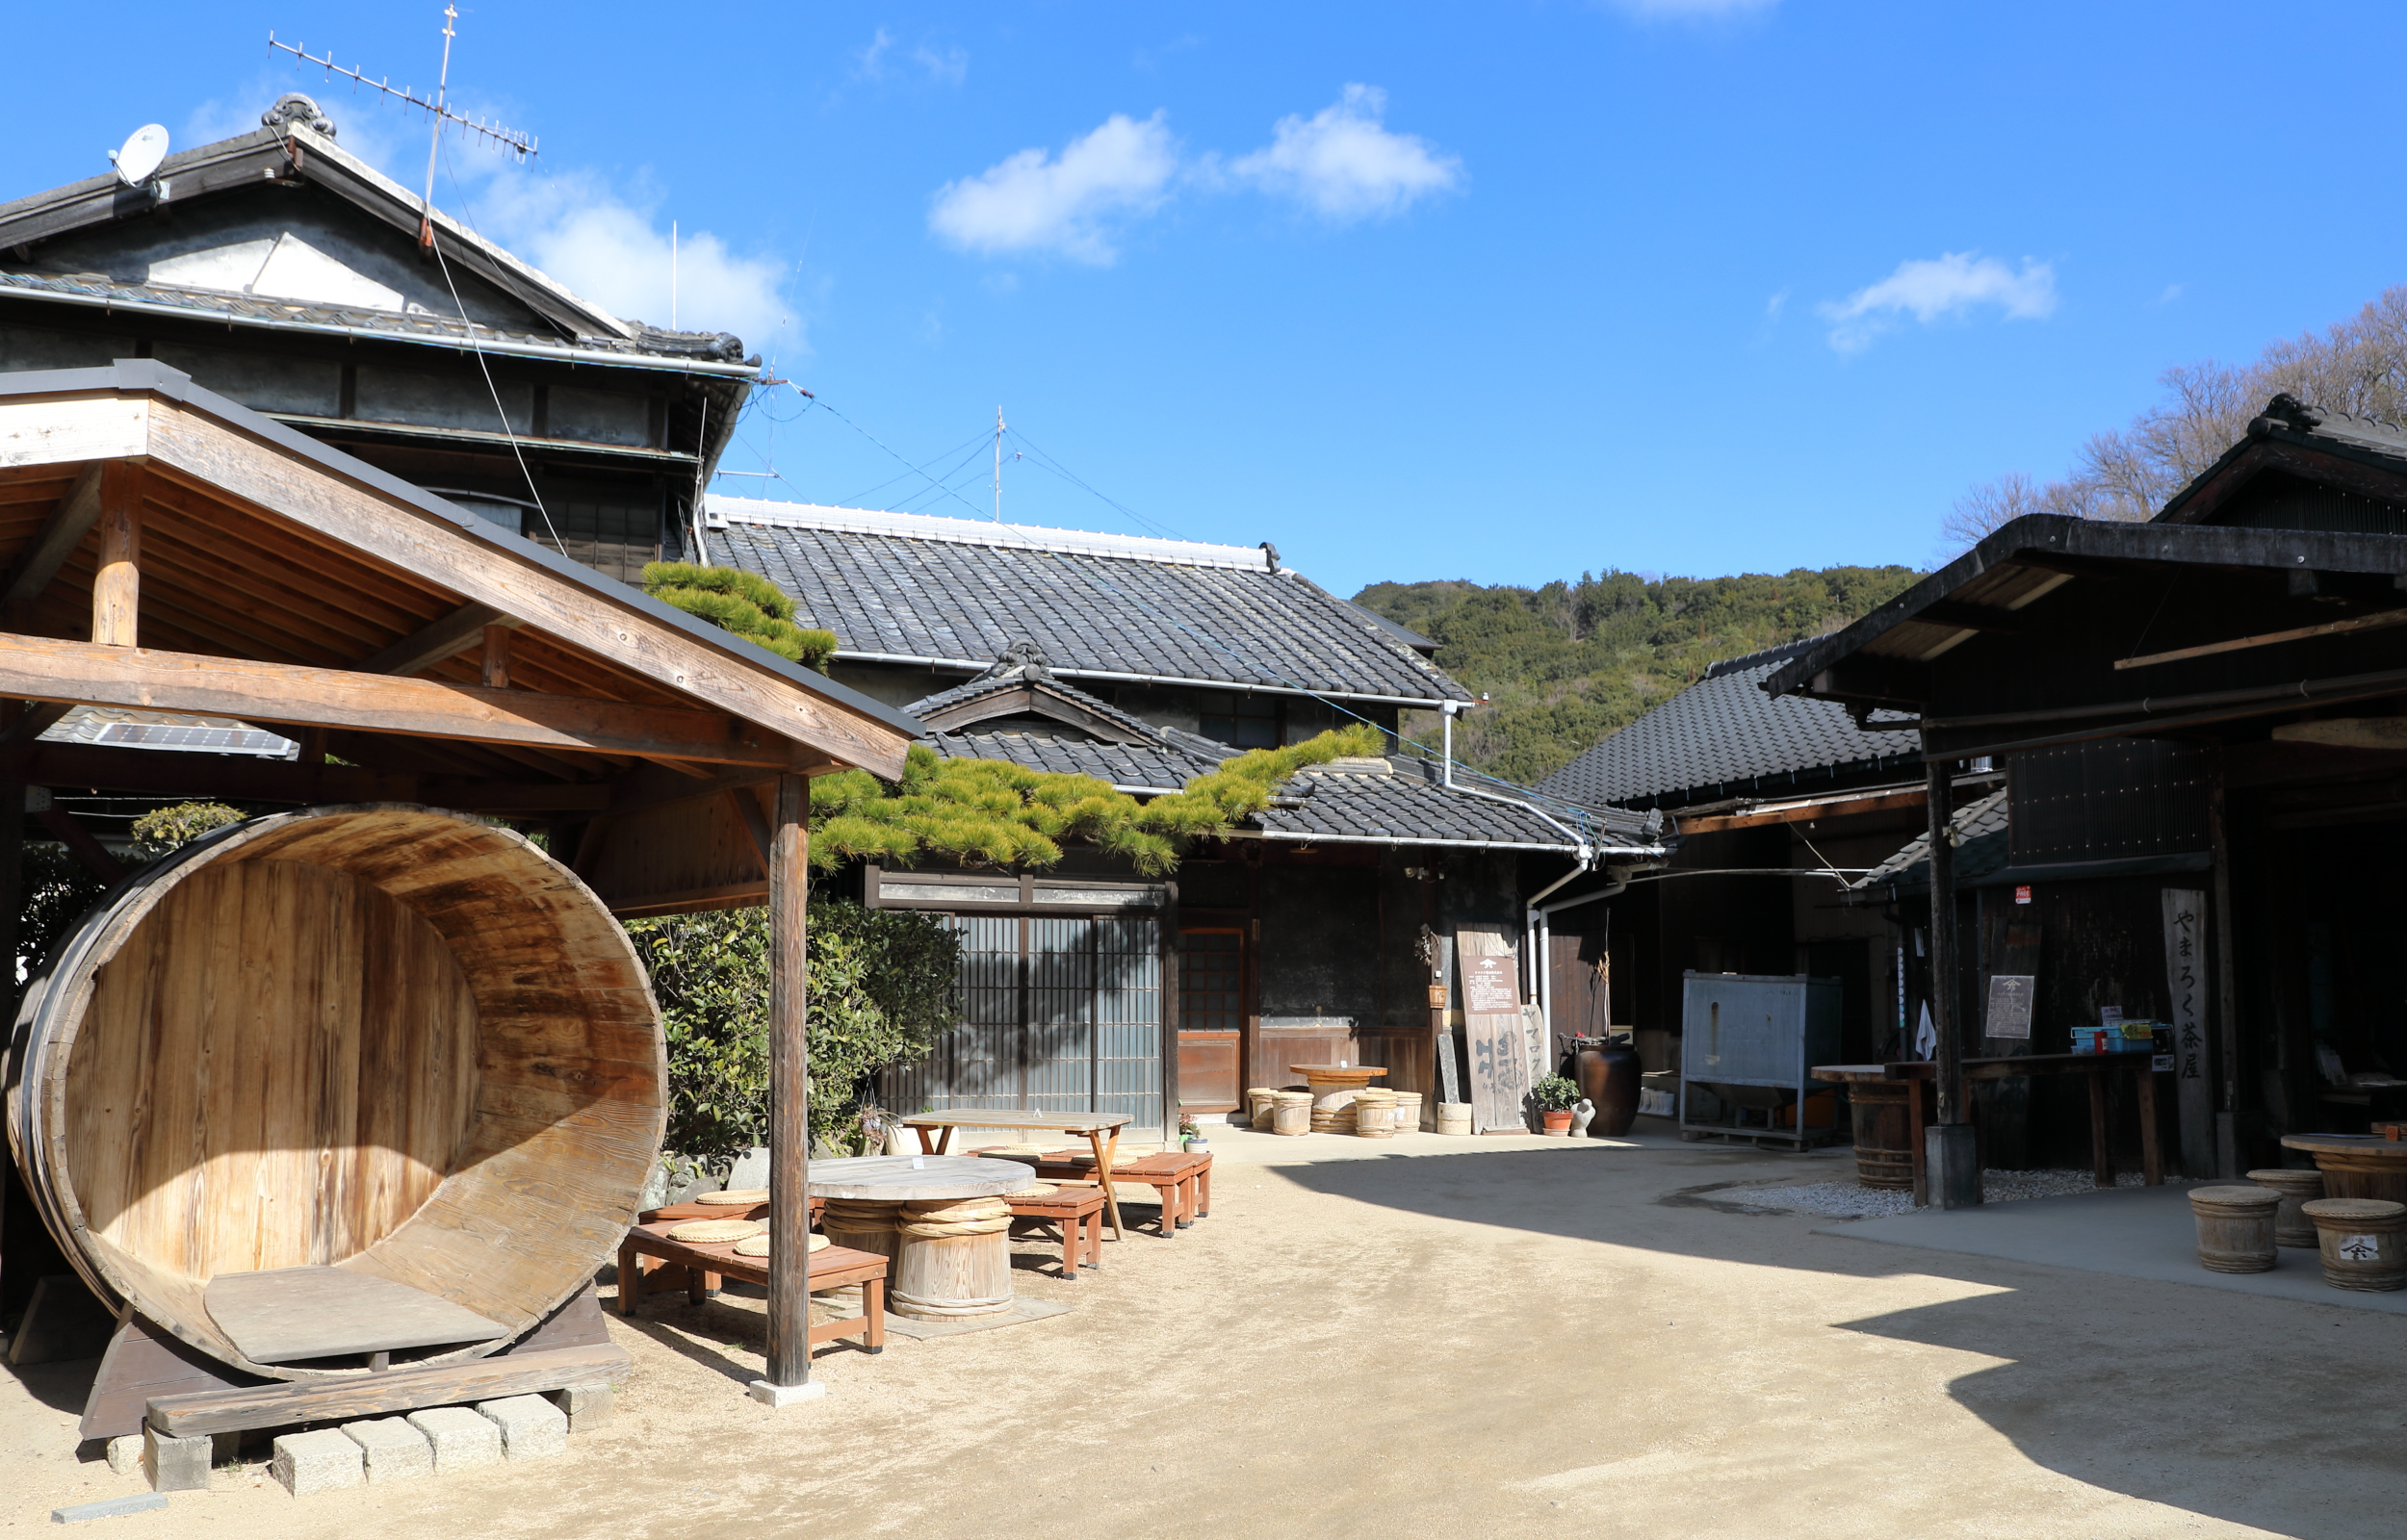 A  kioke  wooden barrel laying on its side in front of the Yamamoto family house gives visitors a sense of the large size of the barrels used to make artisanal soy sauce. The shed in which Yamaroku's soy sauce is made is on the right.